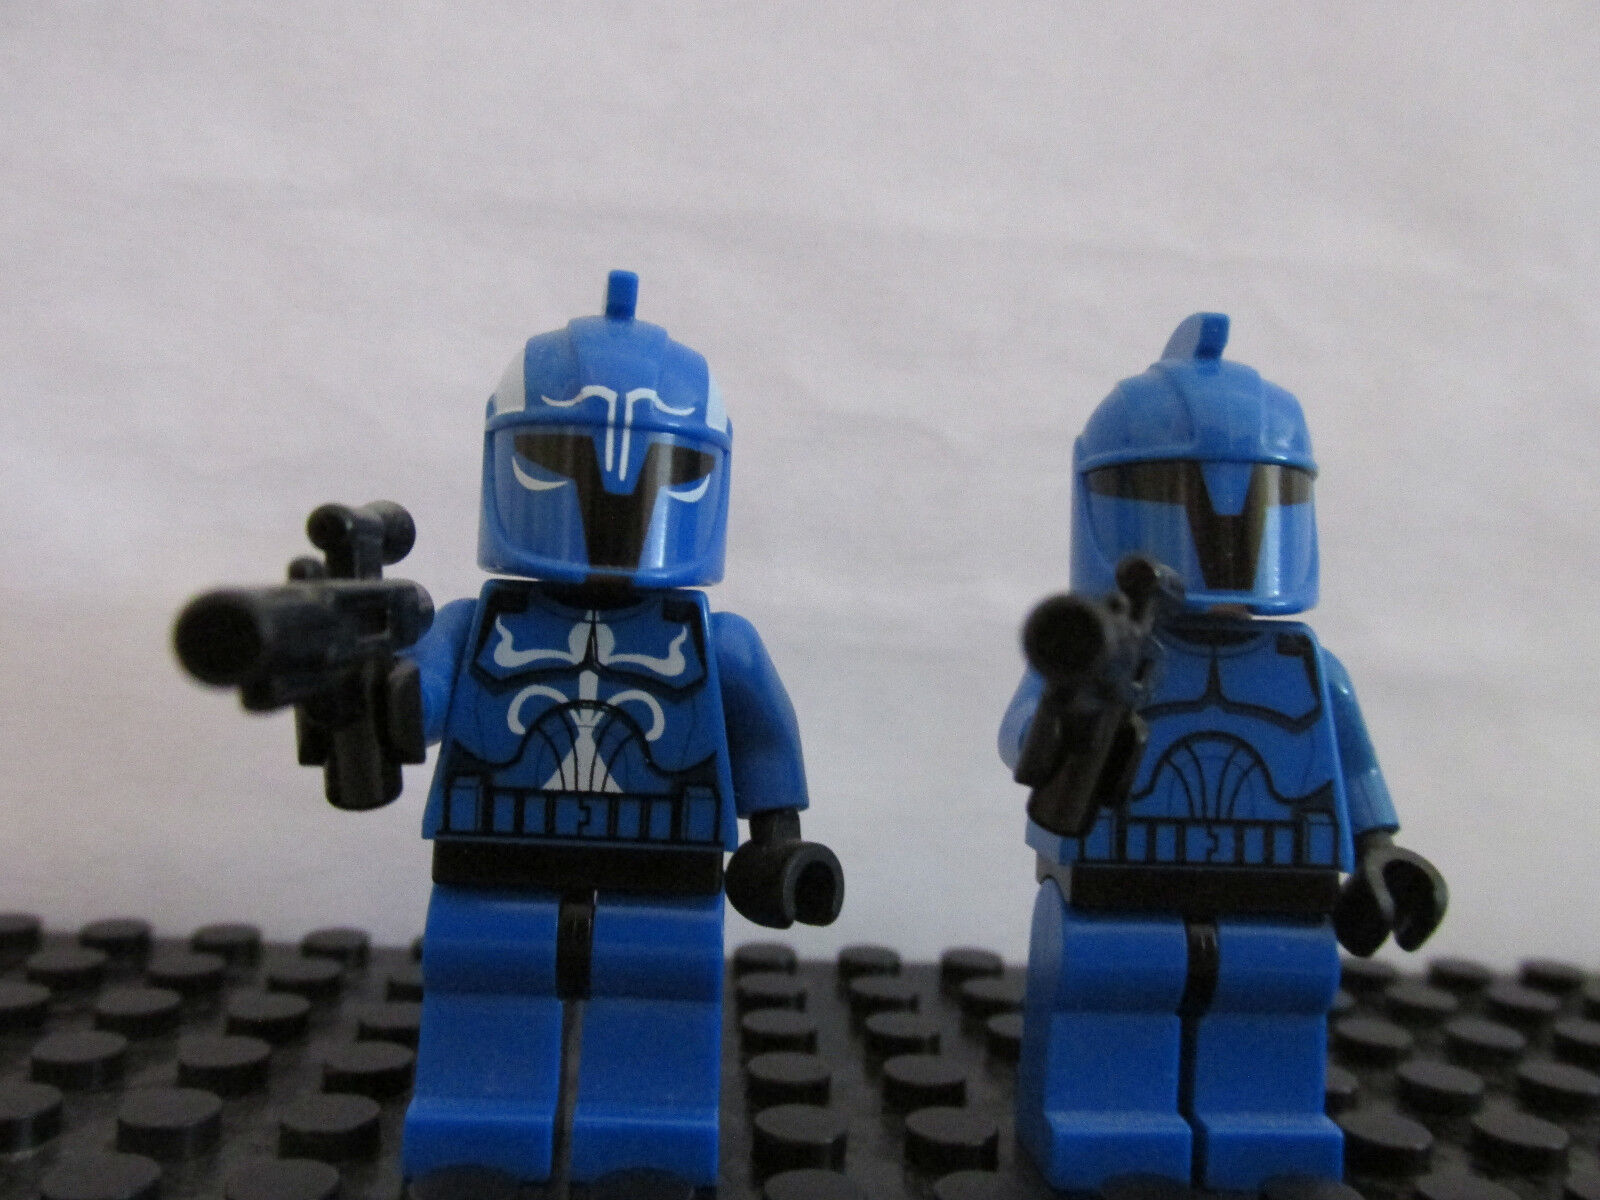 LEGO Star Wars Minifigures -Senate Commando troopers. In Great condition